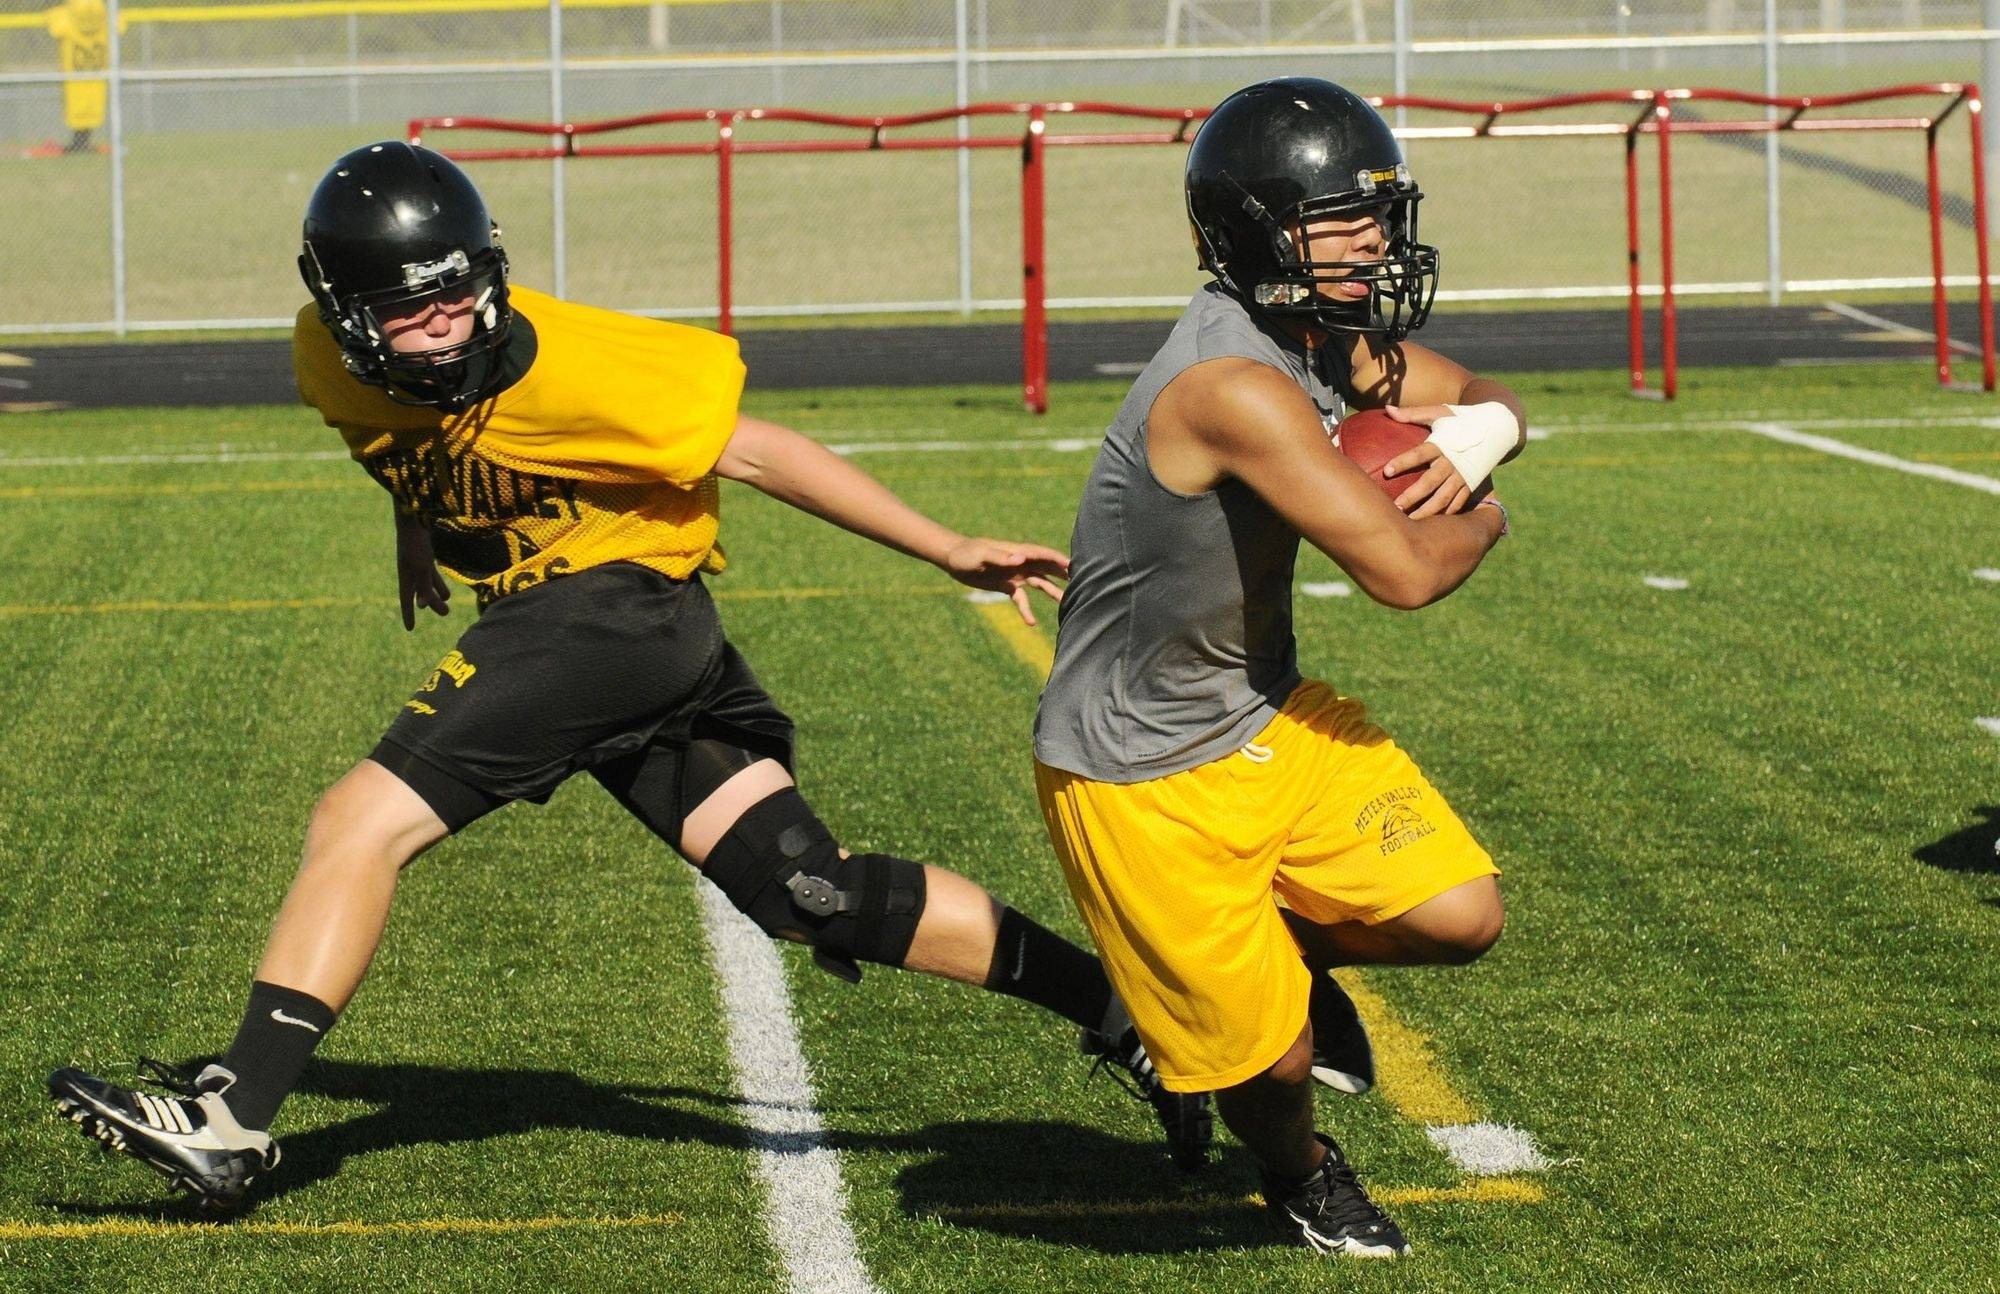 Quarterback Jarrett House, left,hands the ball off to running back Sam Kim on the first day of practice for Matea Valley High School.